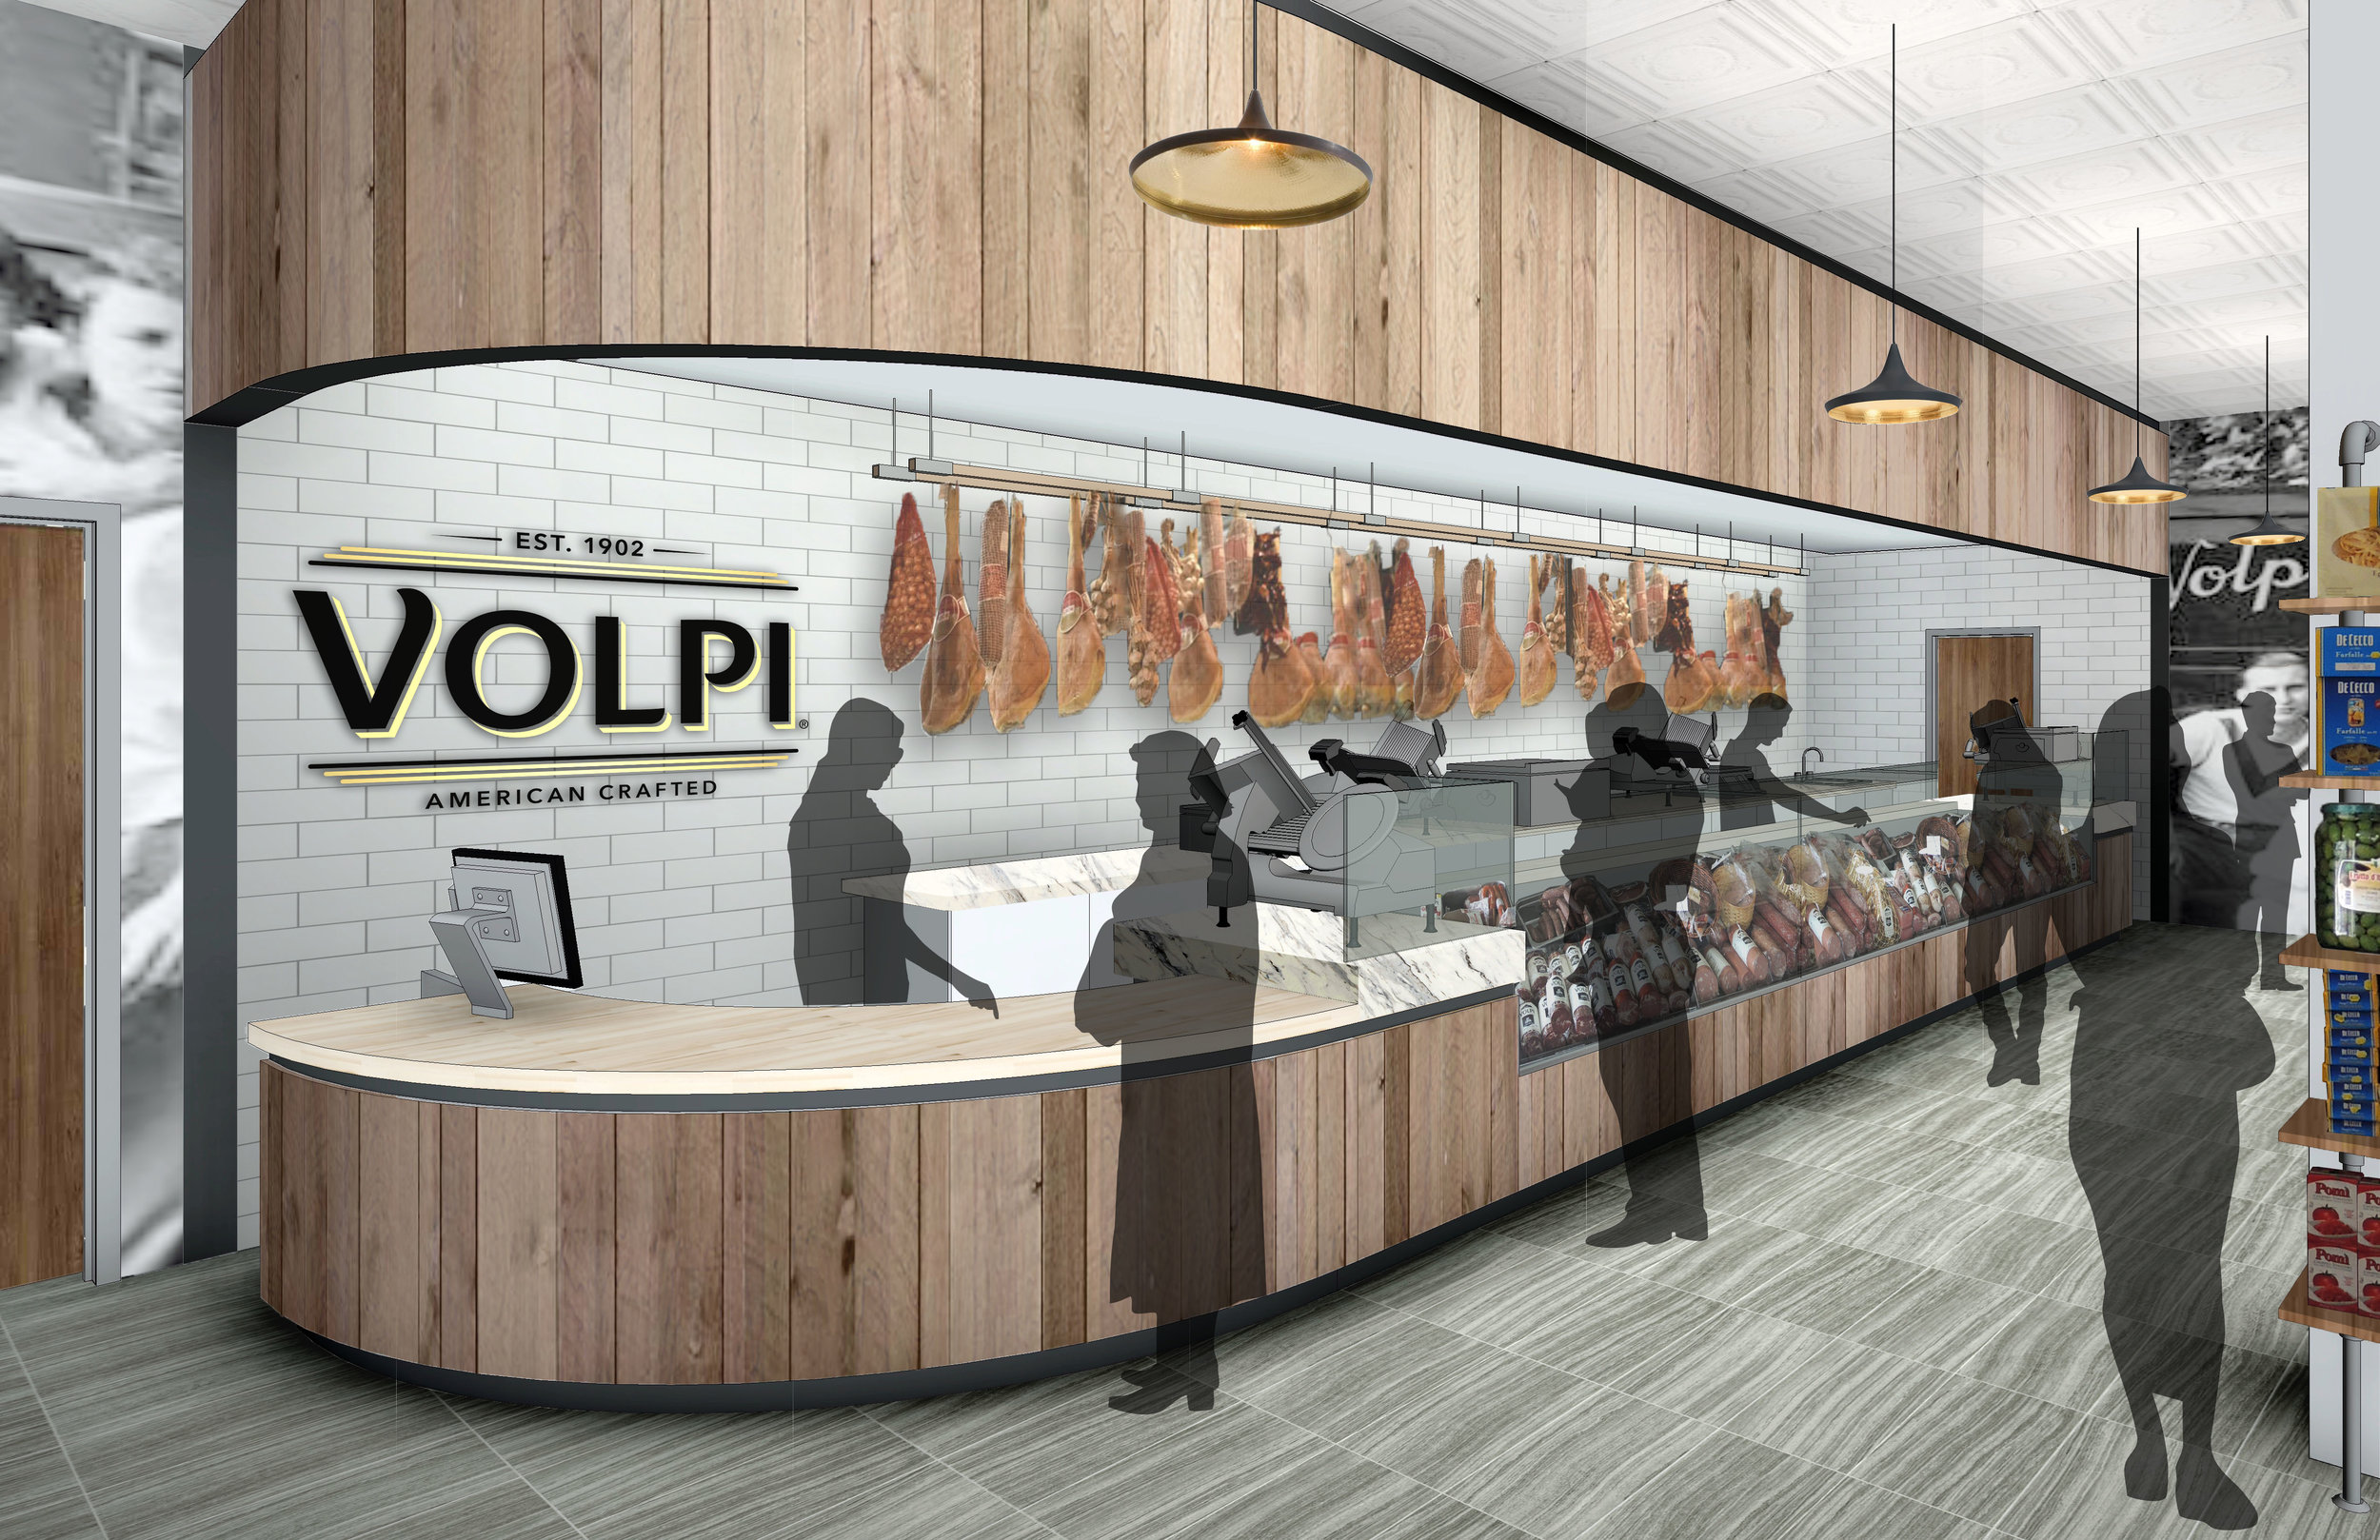 Volpi - one of the greatest places in St. Louis, MO -